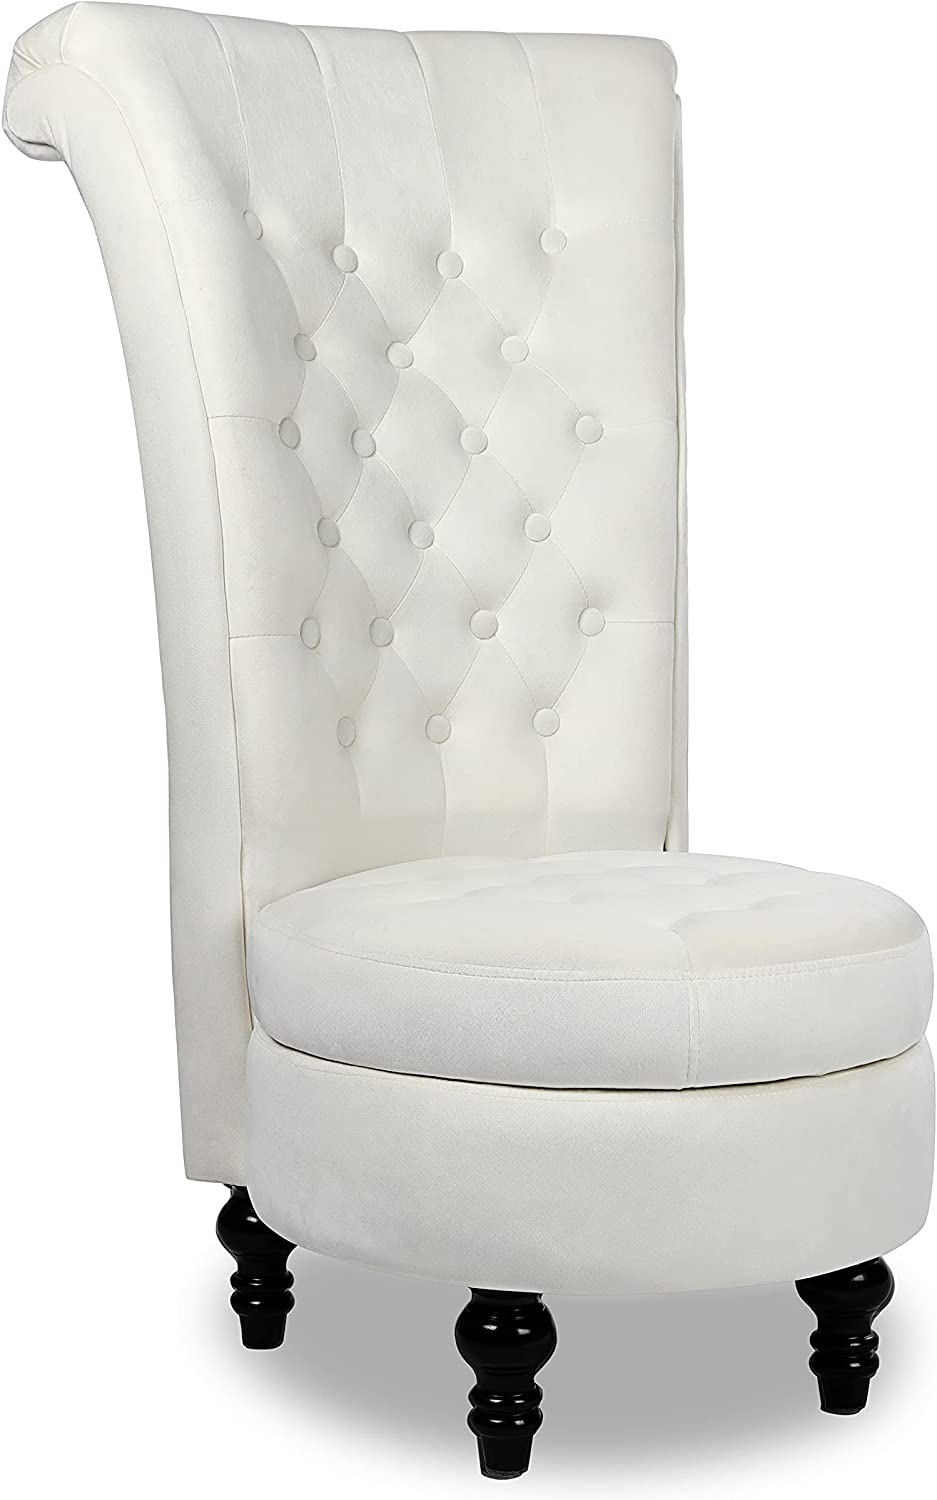 MU Dutch Velvet High Back Armless Chair, Retro Elegant Throne Chair, Upholstered Tufted Accent Seat with Storage for Living Room, Bedroom, Cream White, 2021 New